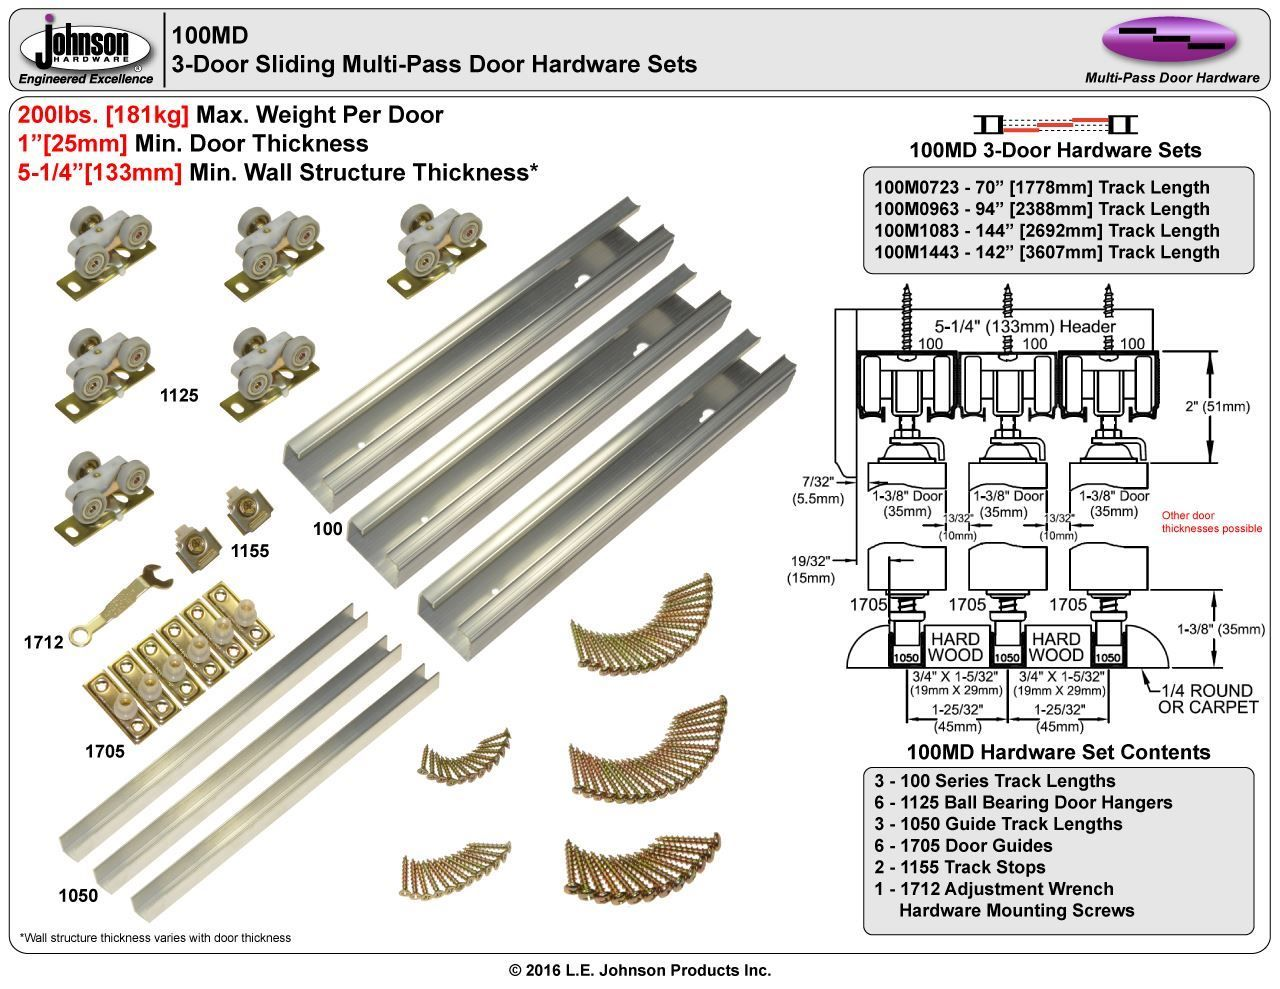 Picture Of 100md 24 3 Door Sliding Tri Pass Hardware Set Door Hardware Cabinet Door Hardware Sliding Door Hardware